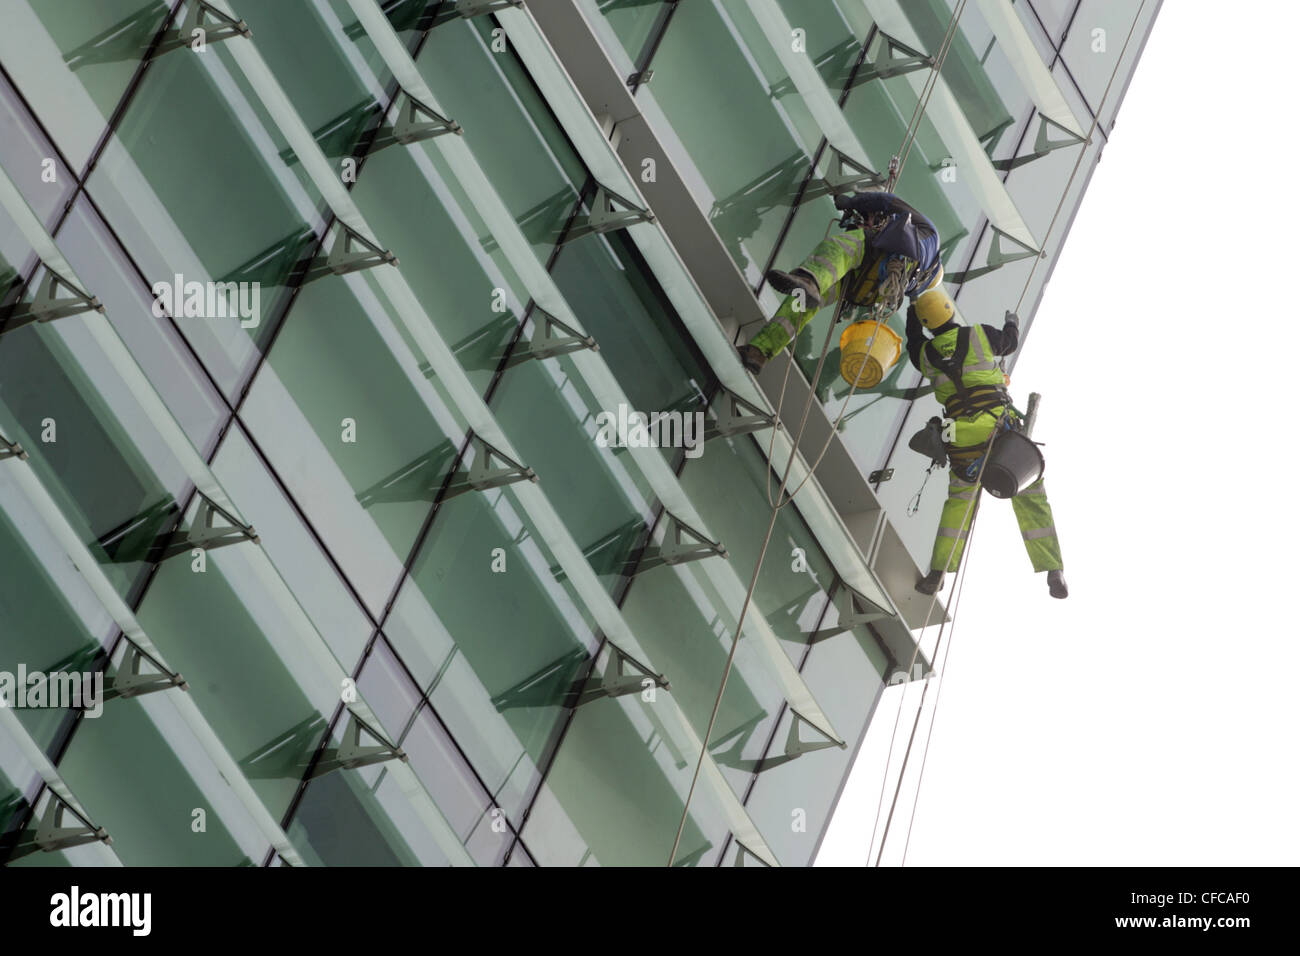 window-cleaners-in-climbing-gear-are-sus